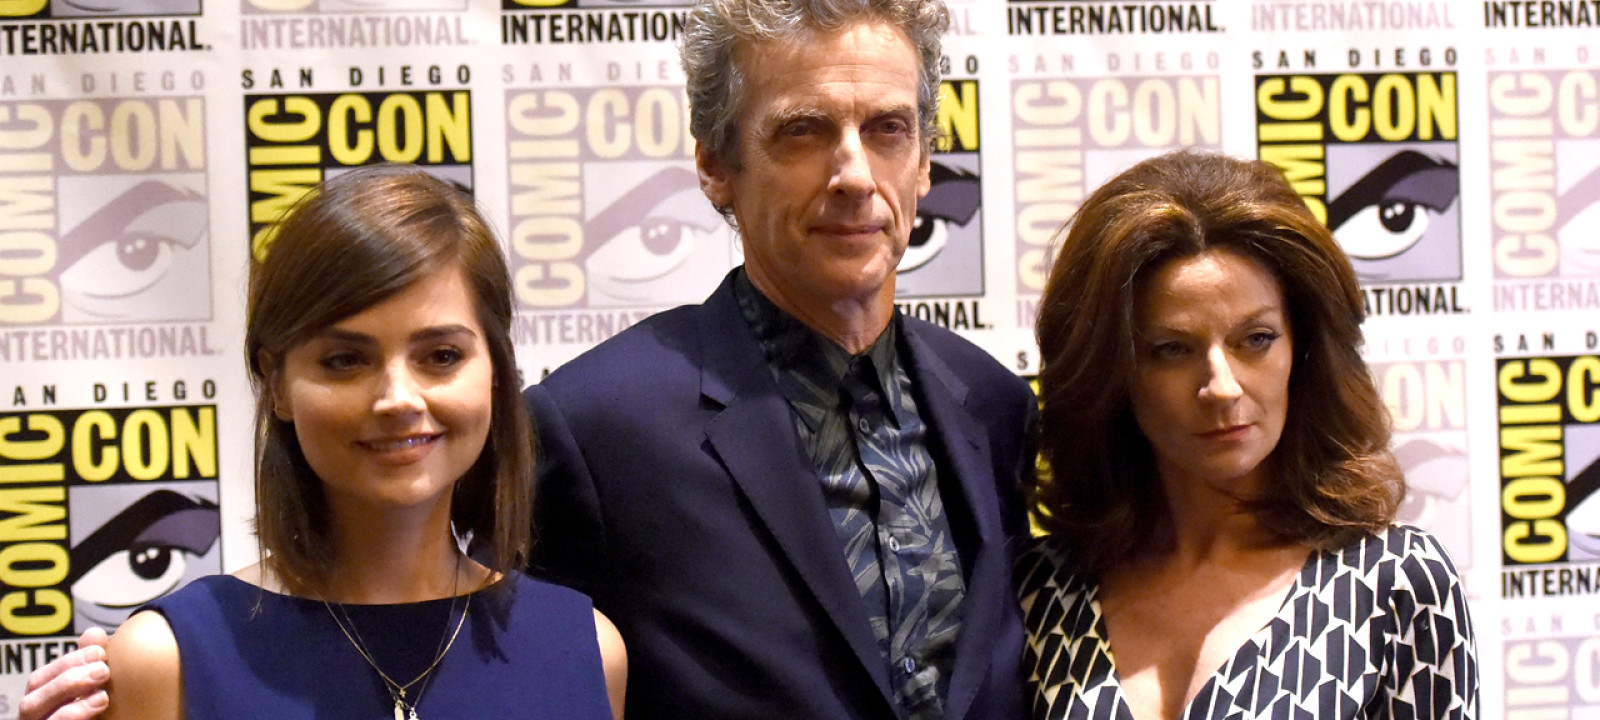 Jenna Coleman, Peter Capaldi and Michelle Gomez at San Diego Comic-Con 2015 (Pic: Jason Merritt/Getty Images)